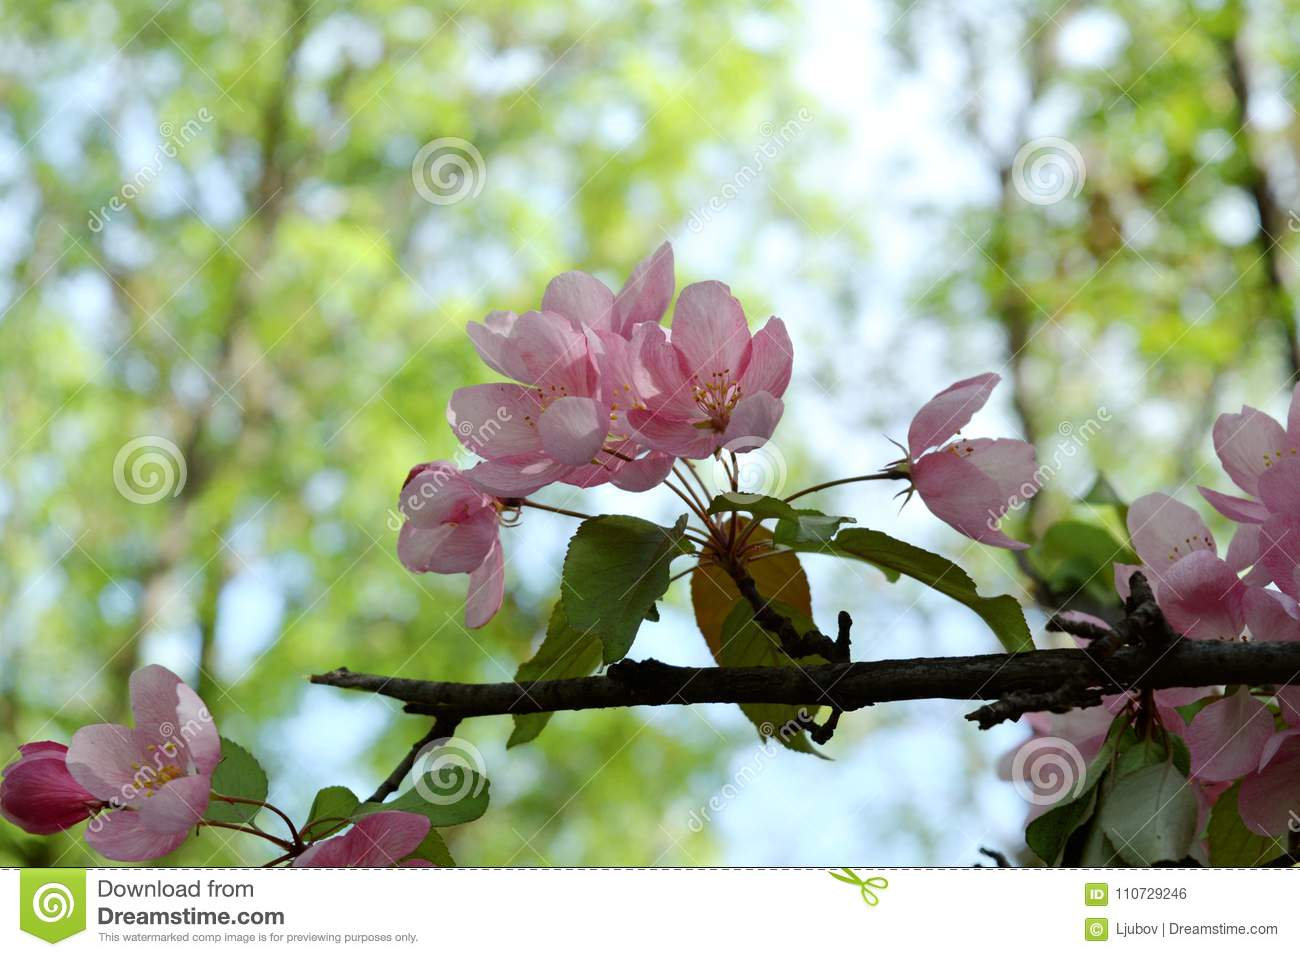 Blooming Apple Tree With Delicate Pink Flowers On Blurred Background